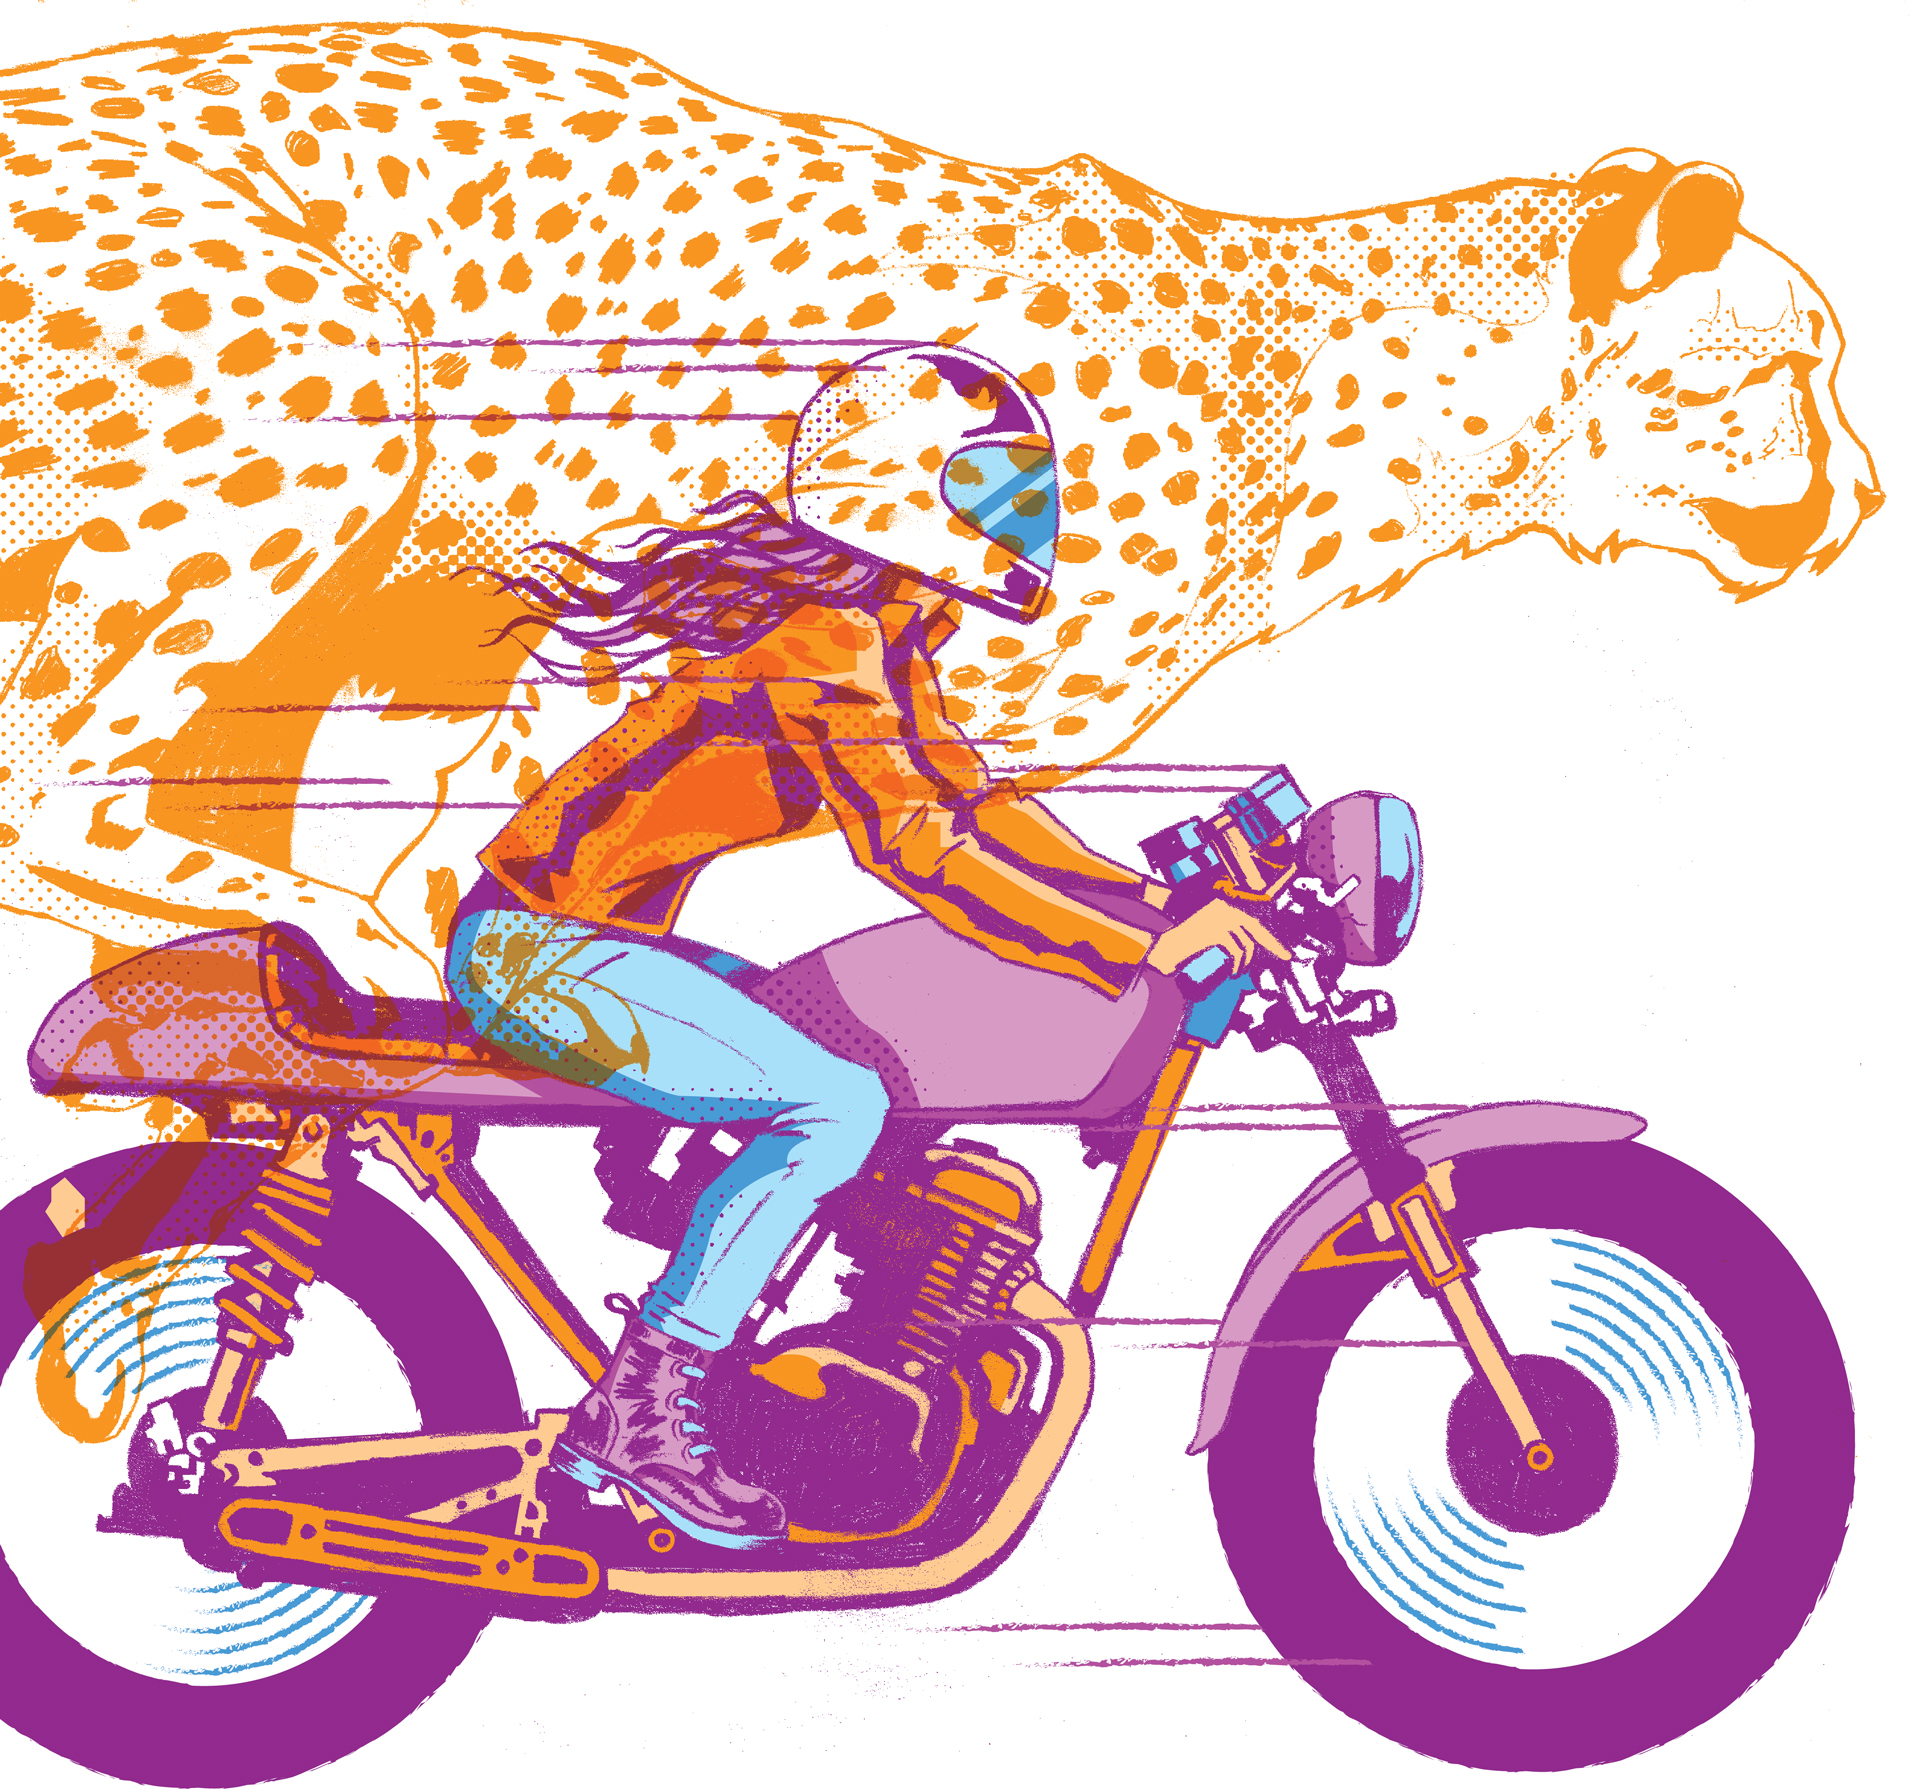 cheetah and motorcycle drawing